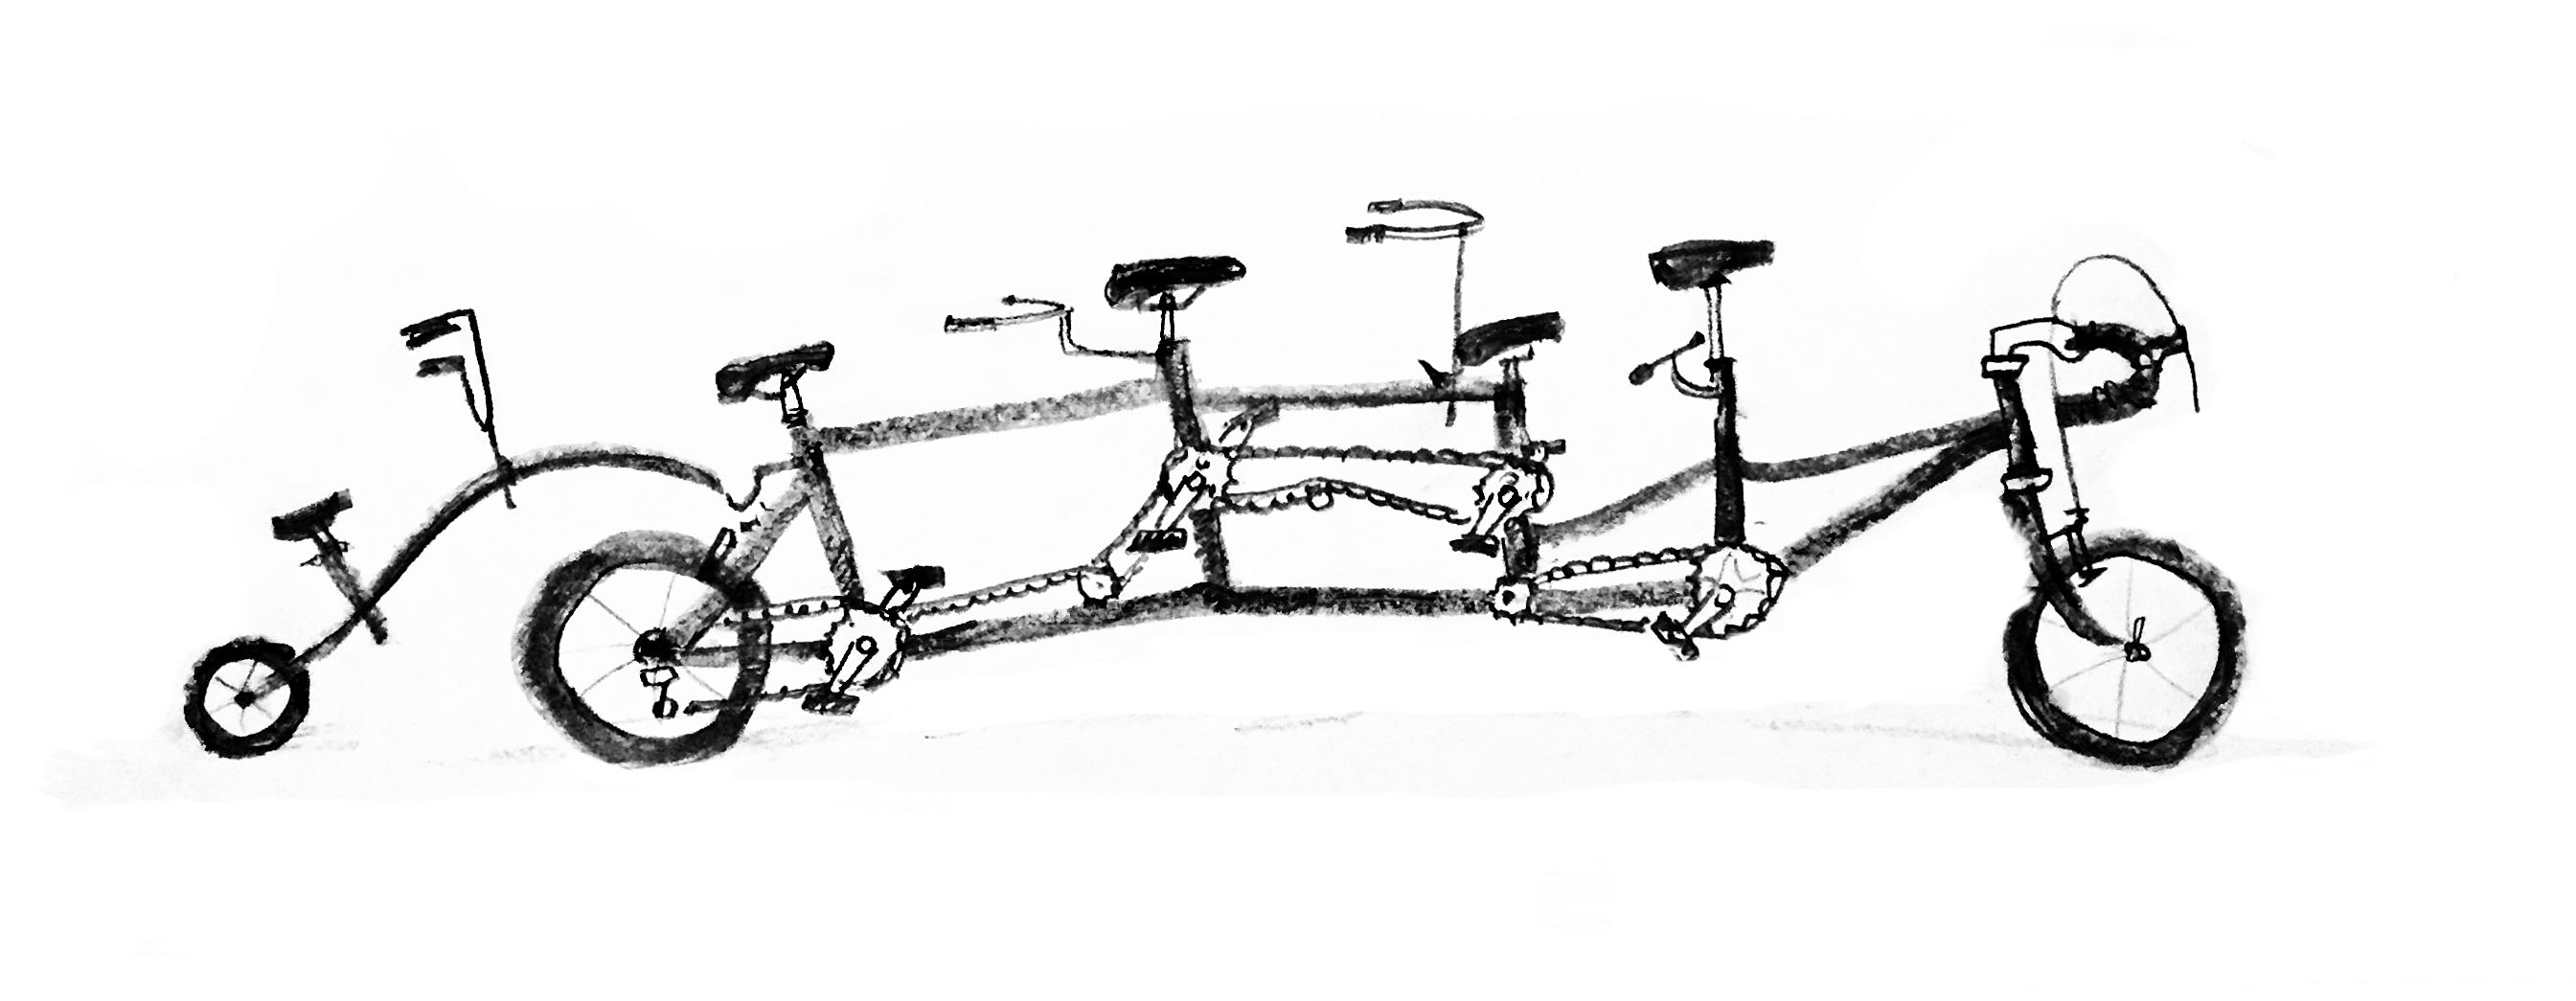 A bicycle built for five people of differing sizes